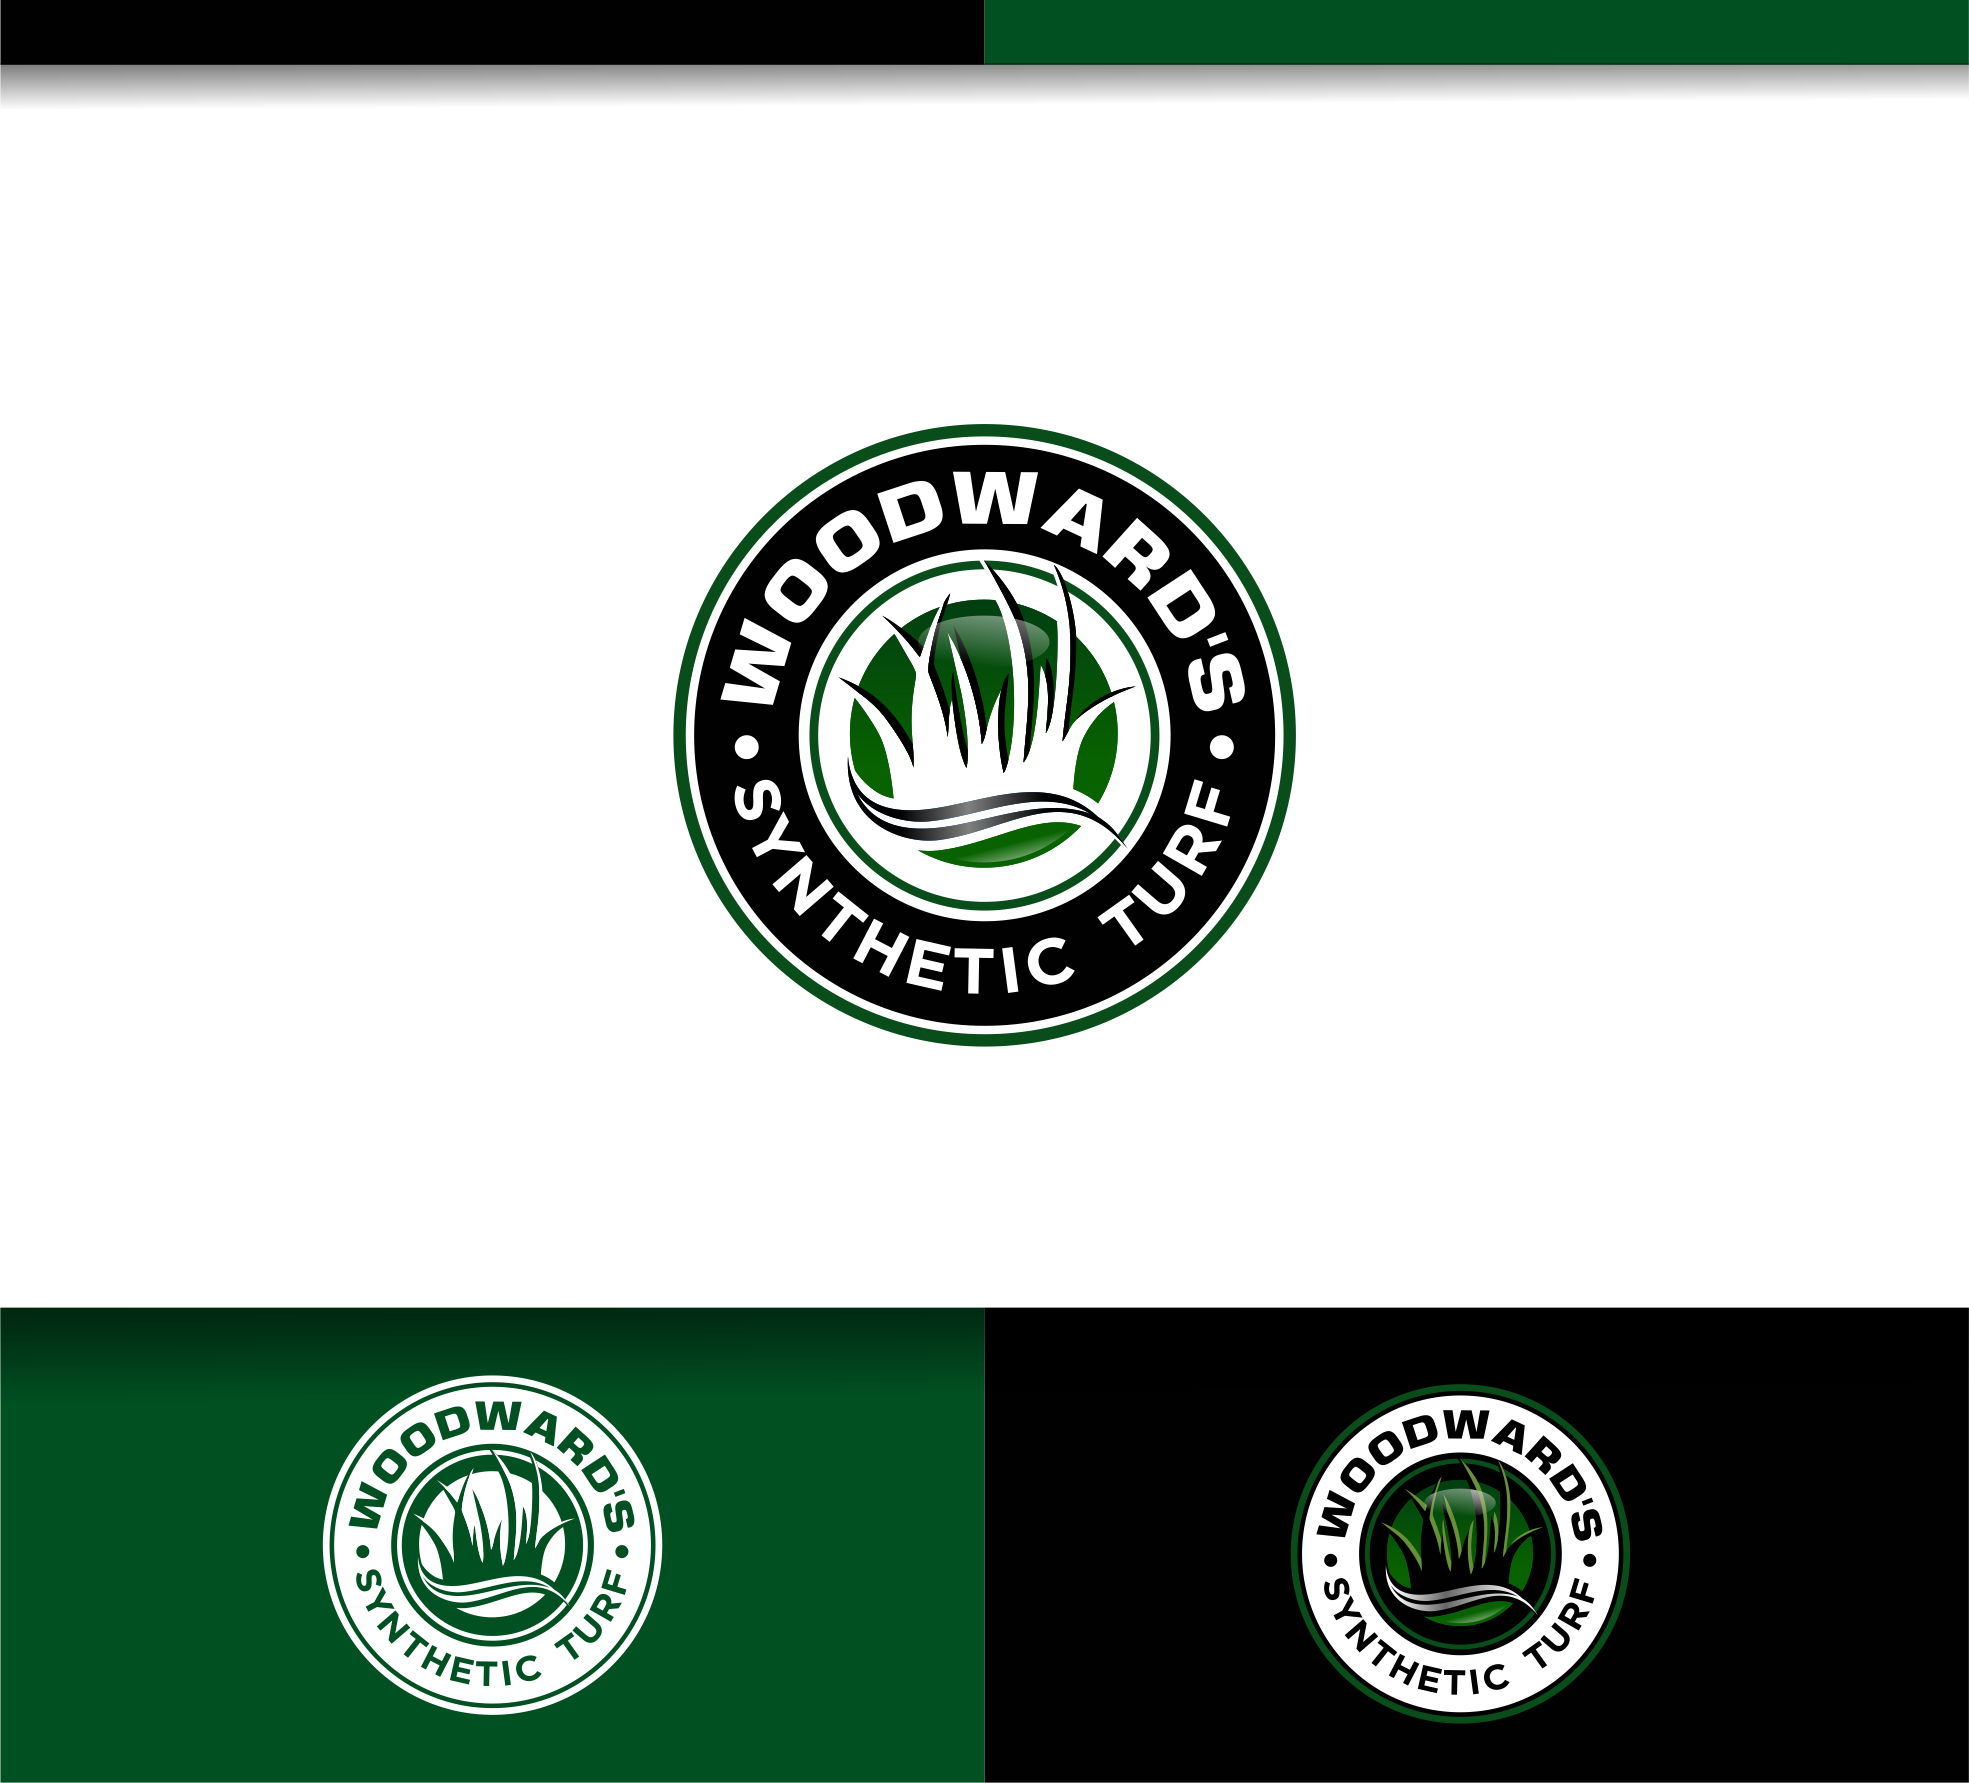 Logo Design by Raymond Garcia - Entry No. 87 in the Logo Design Contest Artistic Logo Design for Woodward's Synthetic Turf.